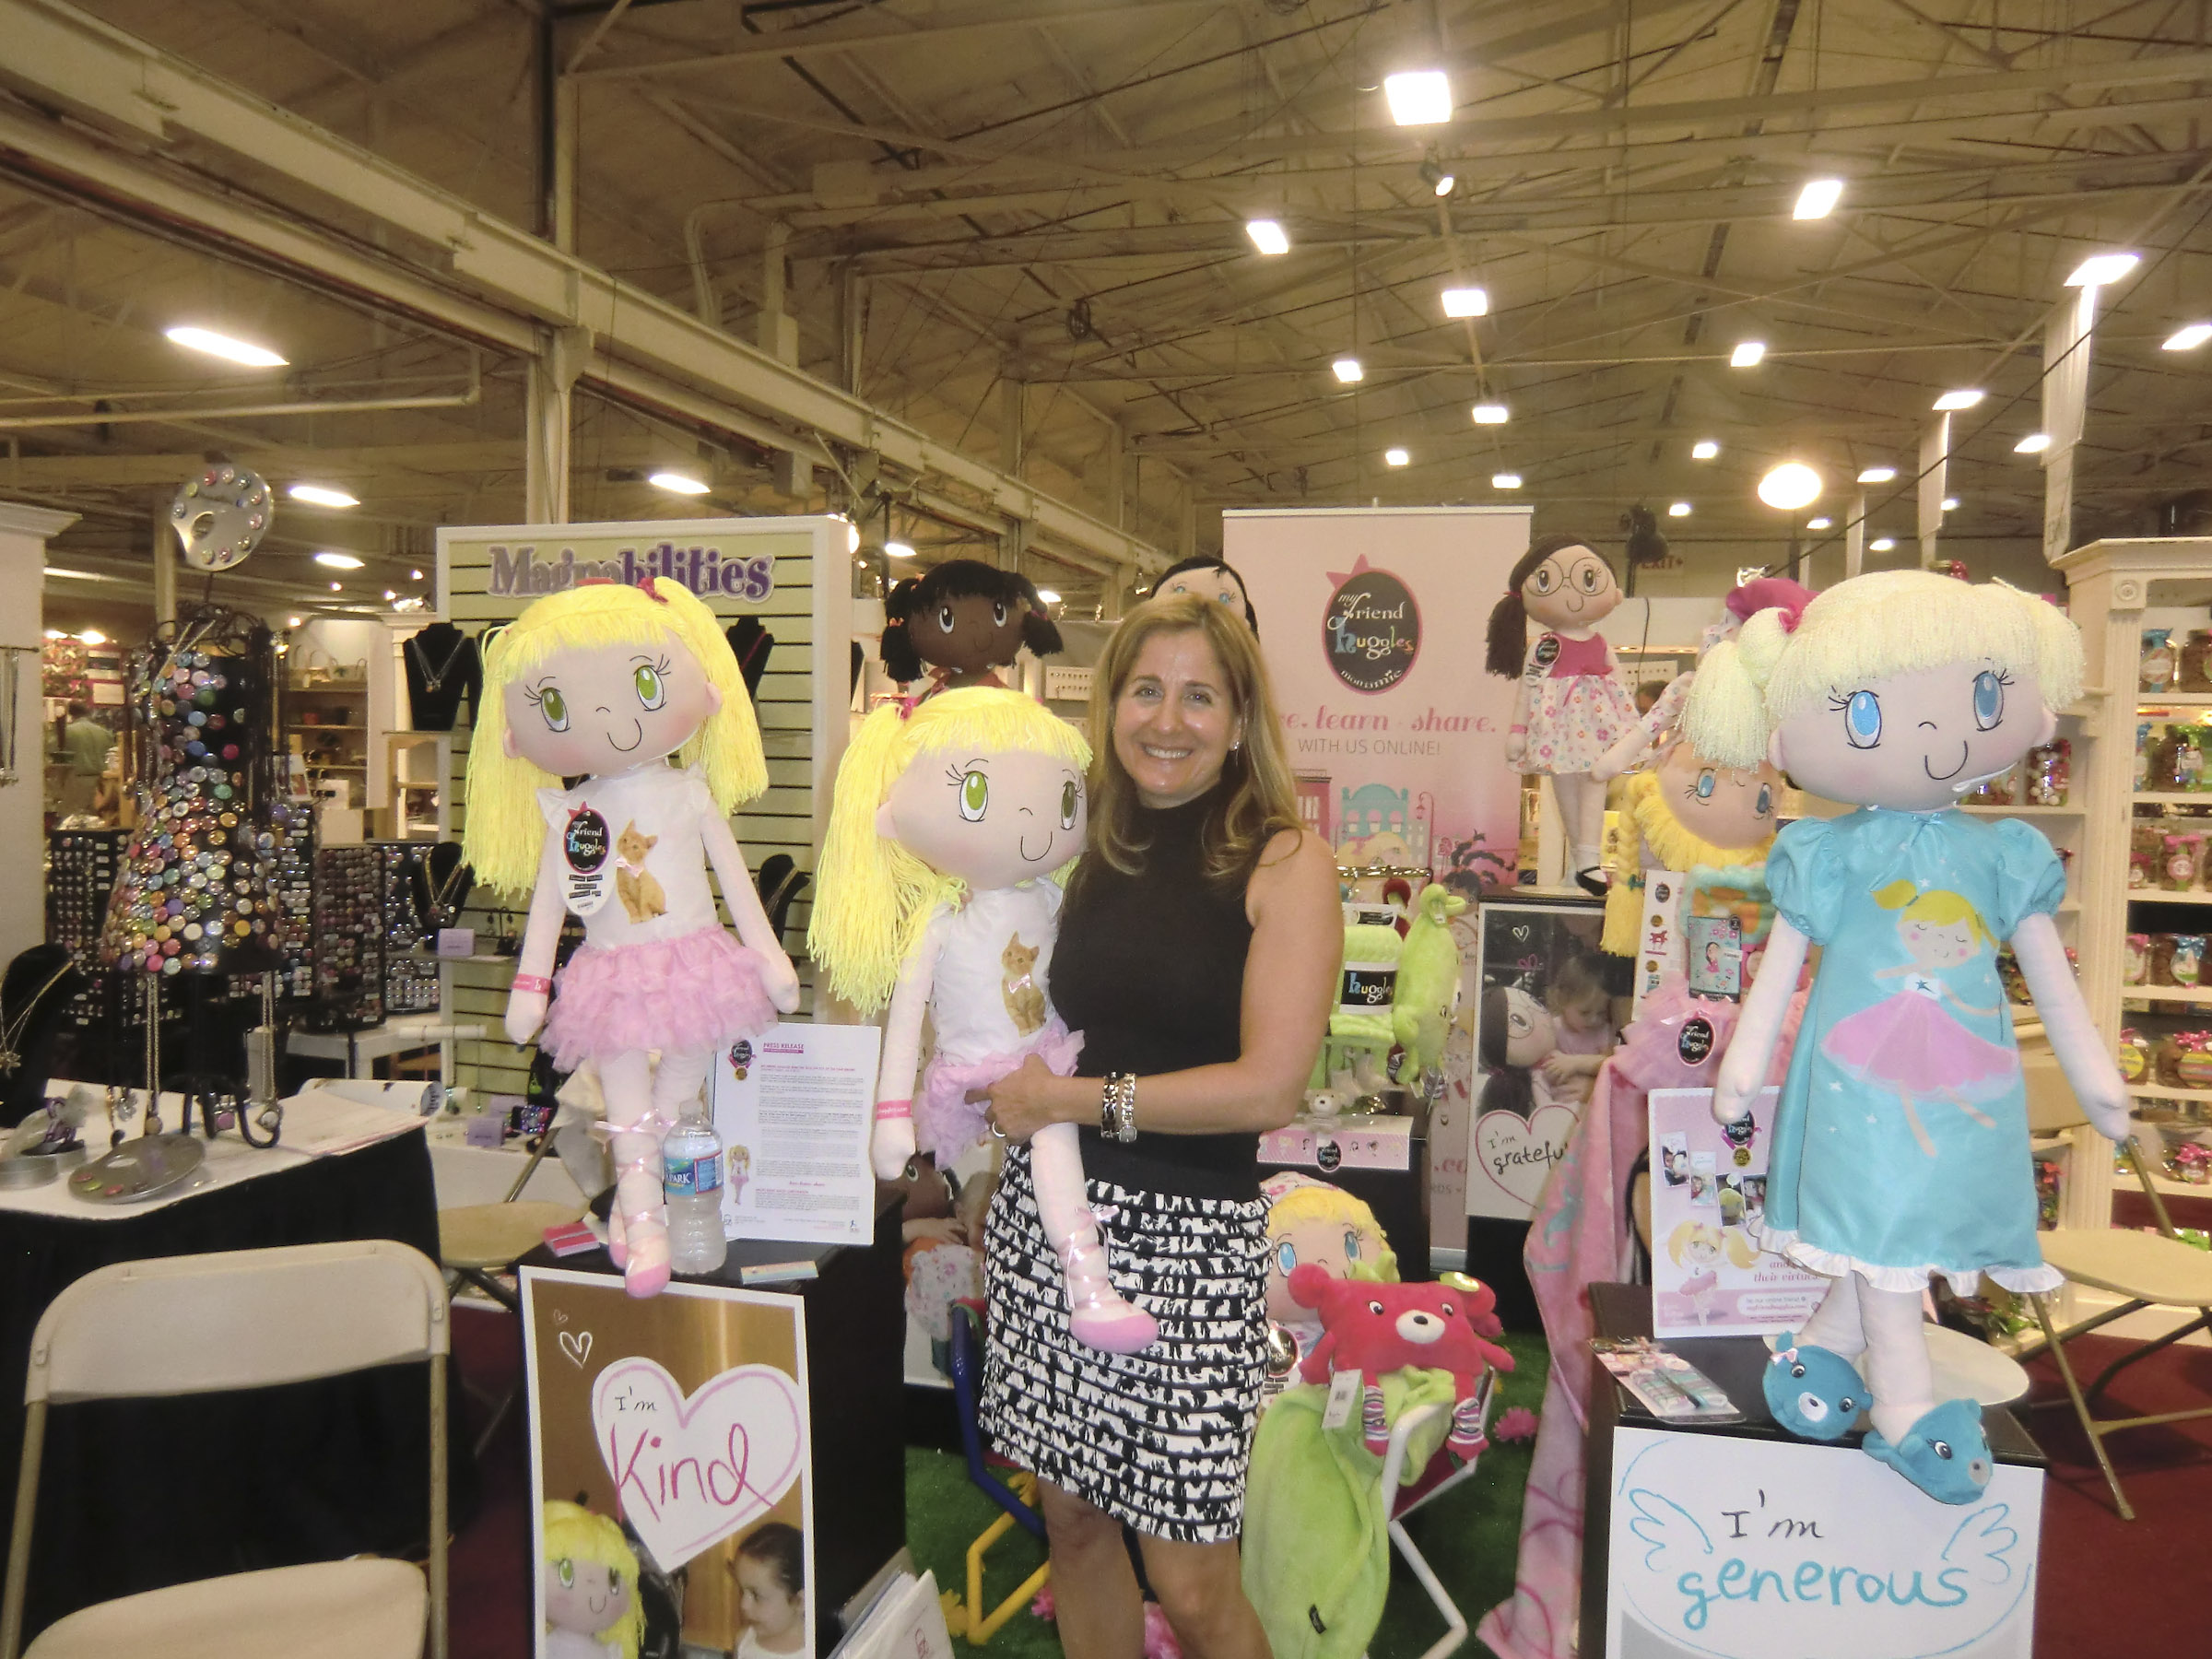 My-Friend-Huggles-2012-Philadelphia-Gift-Show-5-9 | My Friend Huggles